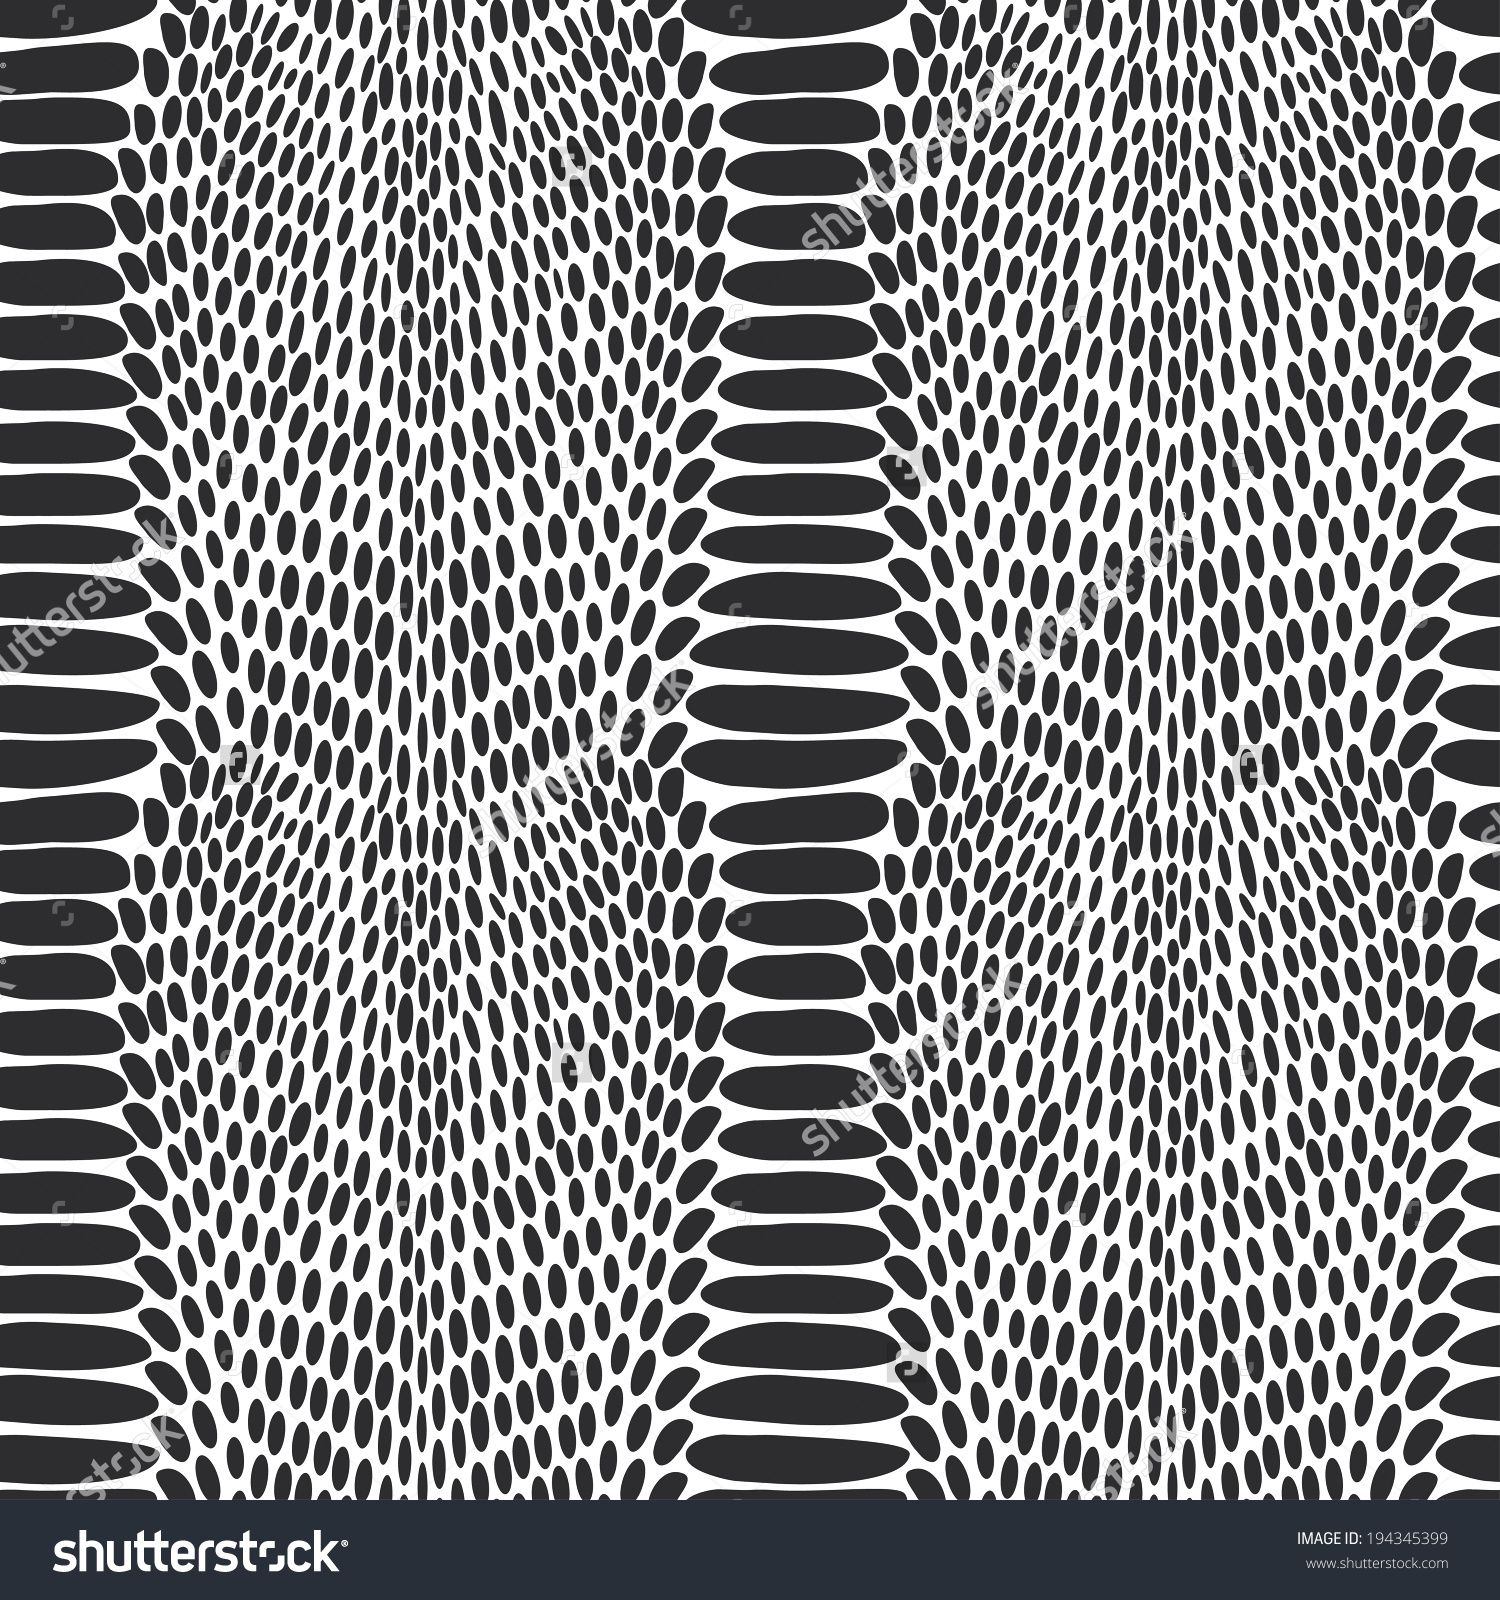 1500x1600 Stock Vector Snake Skin Texture Seamless Pattern Black On White